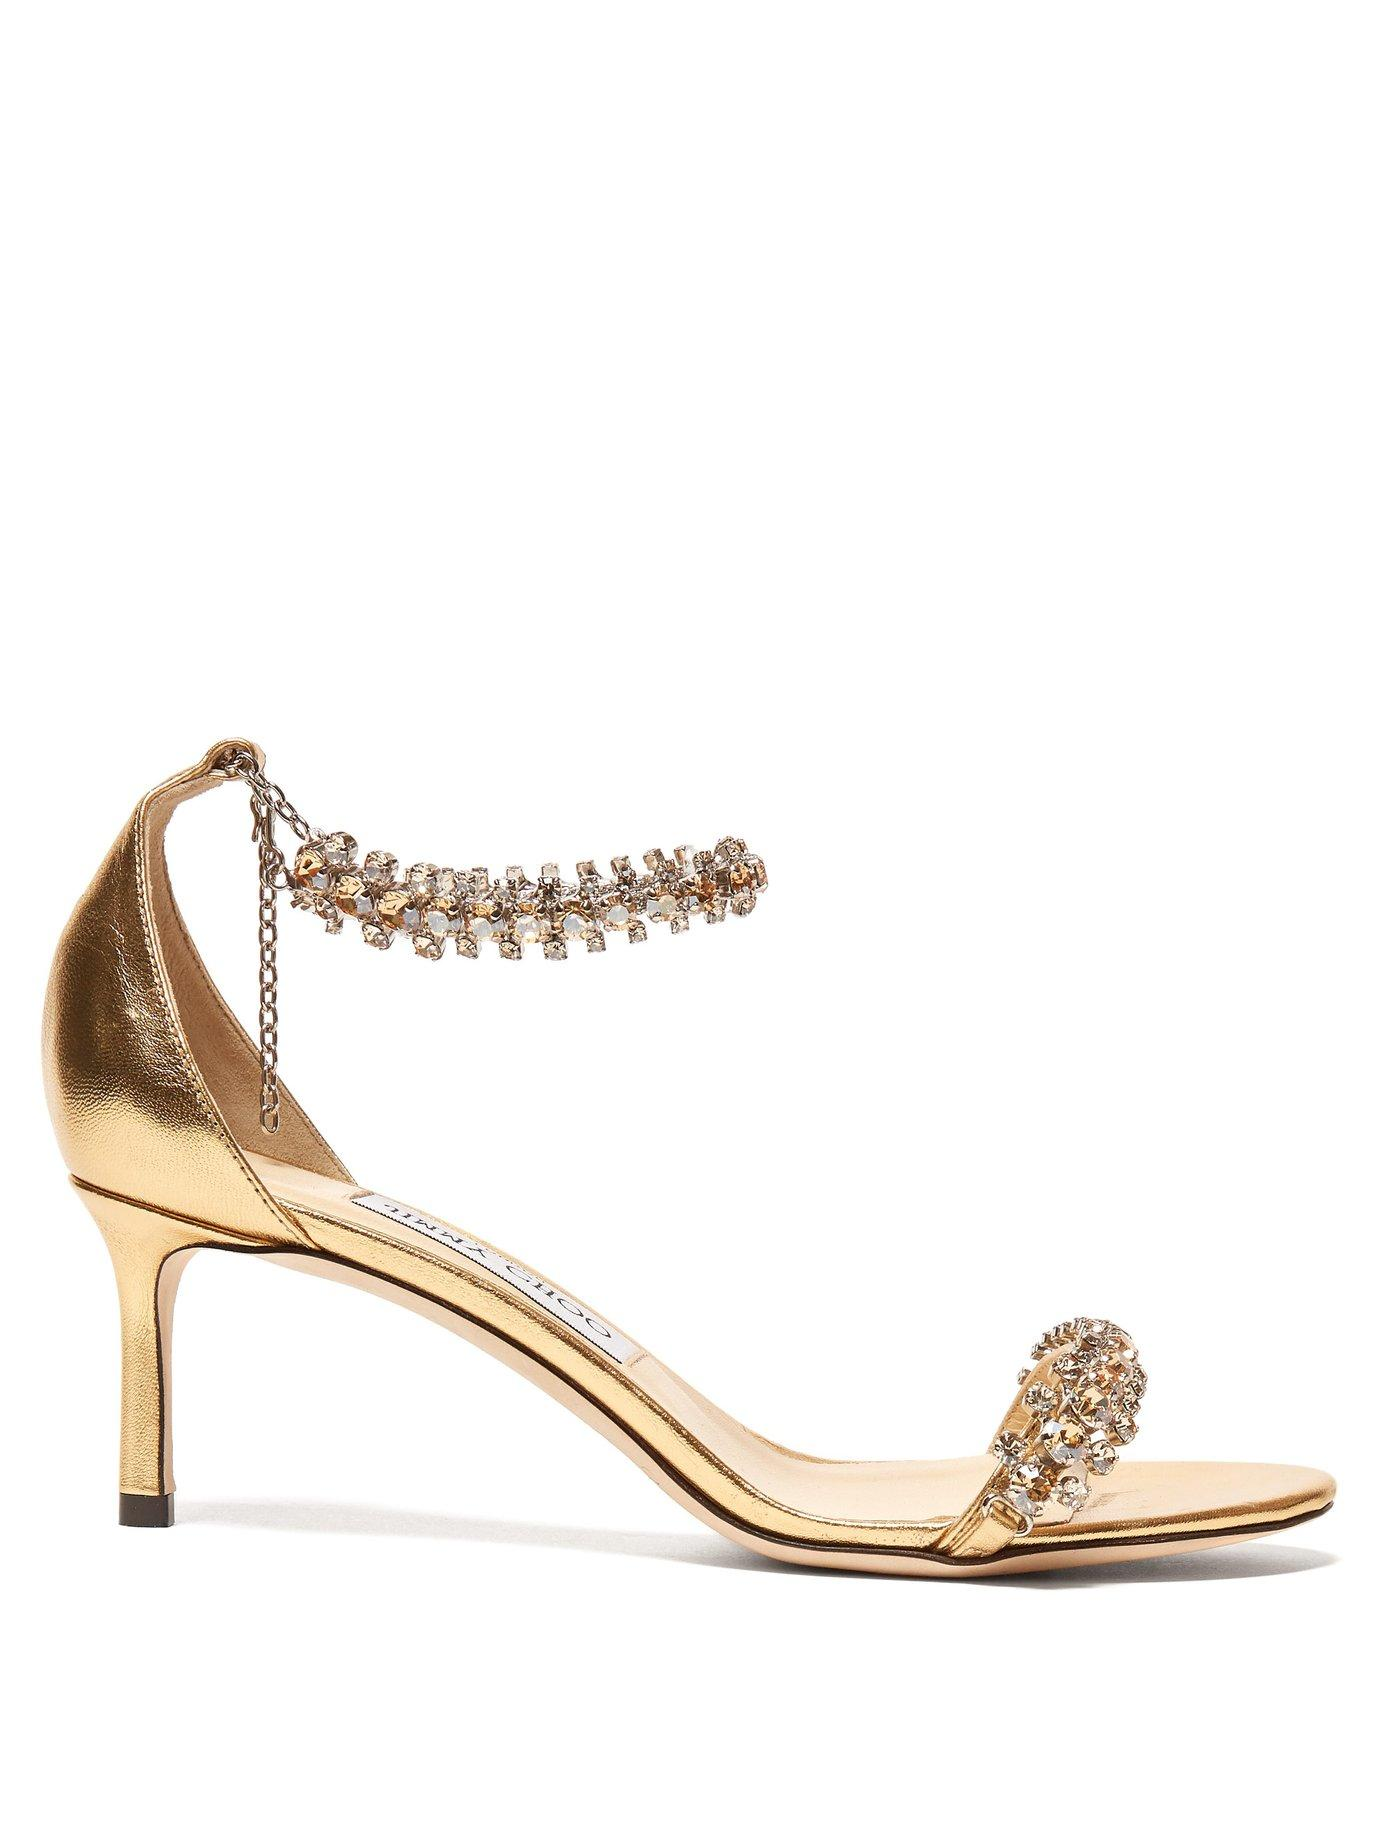 2243d601a943 Jimmy Choo Shiloh 60 Crystal Embellished Sandals in Metallic - Lyst